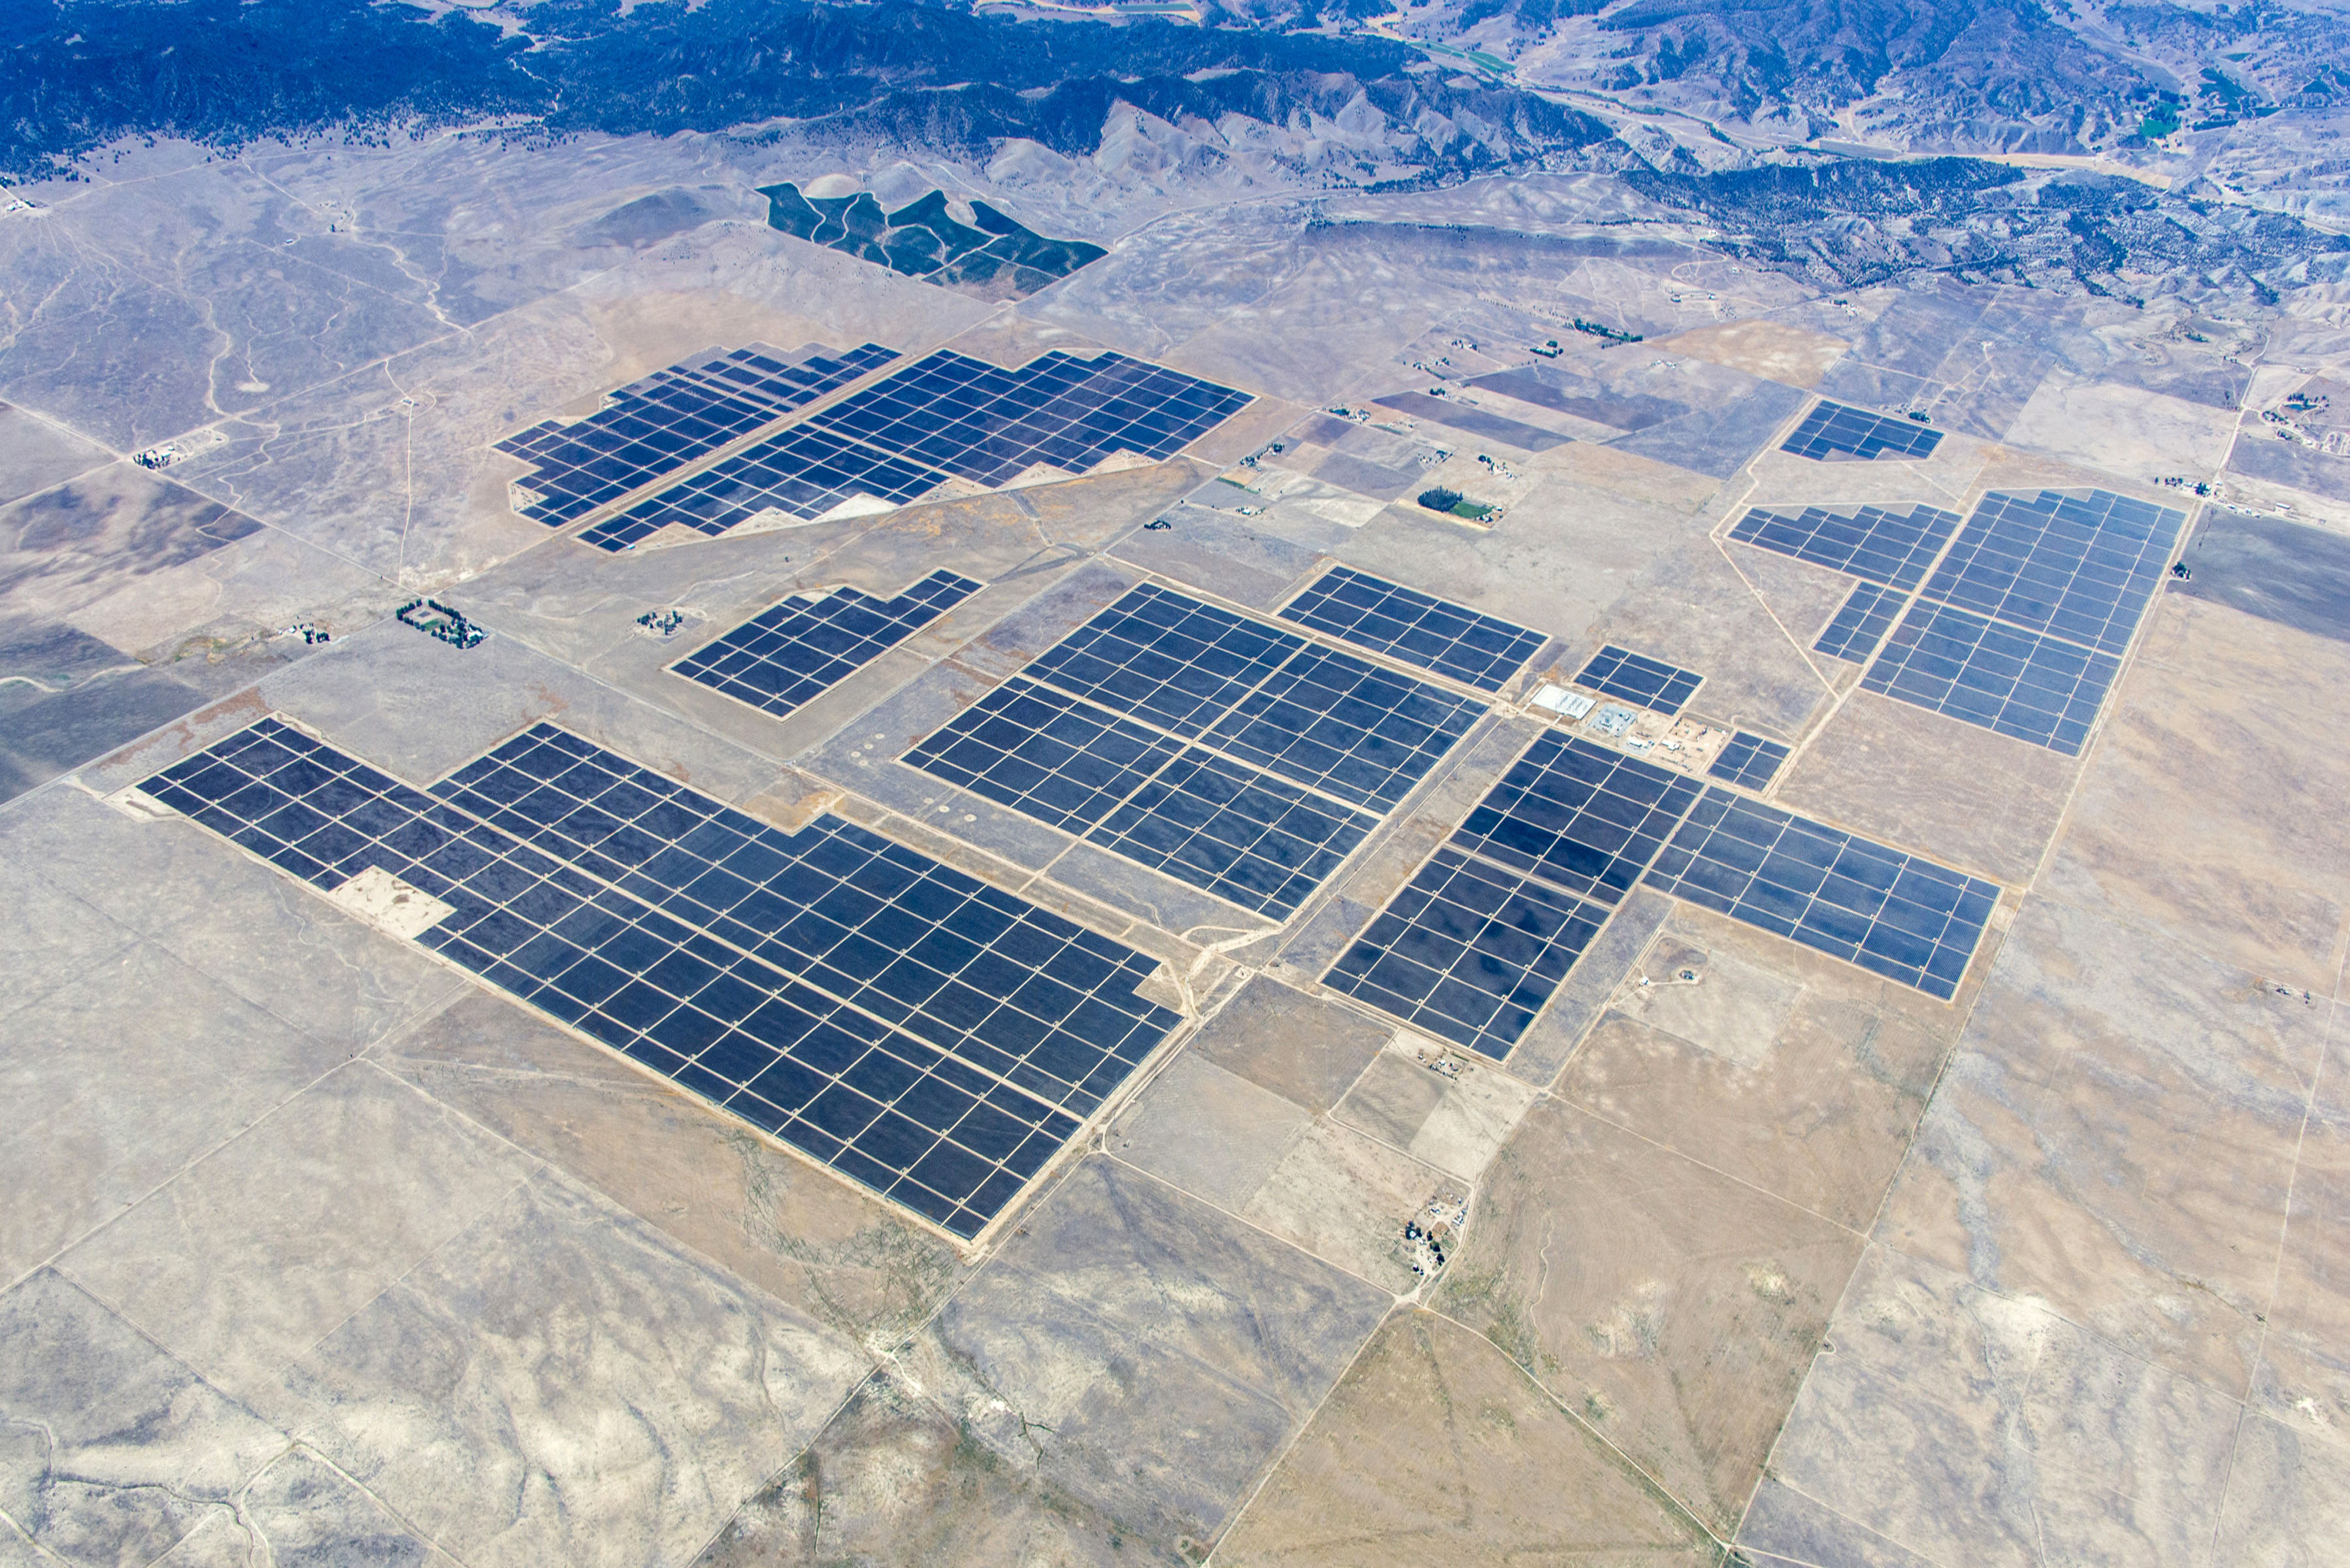 The Topaz solar panel farm, that uses First Solar panels in CA.